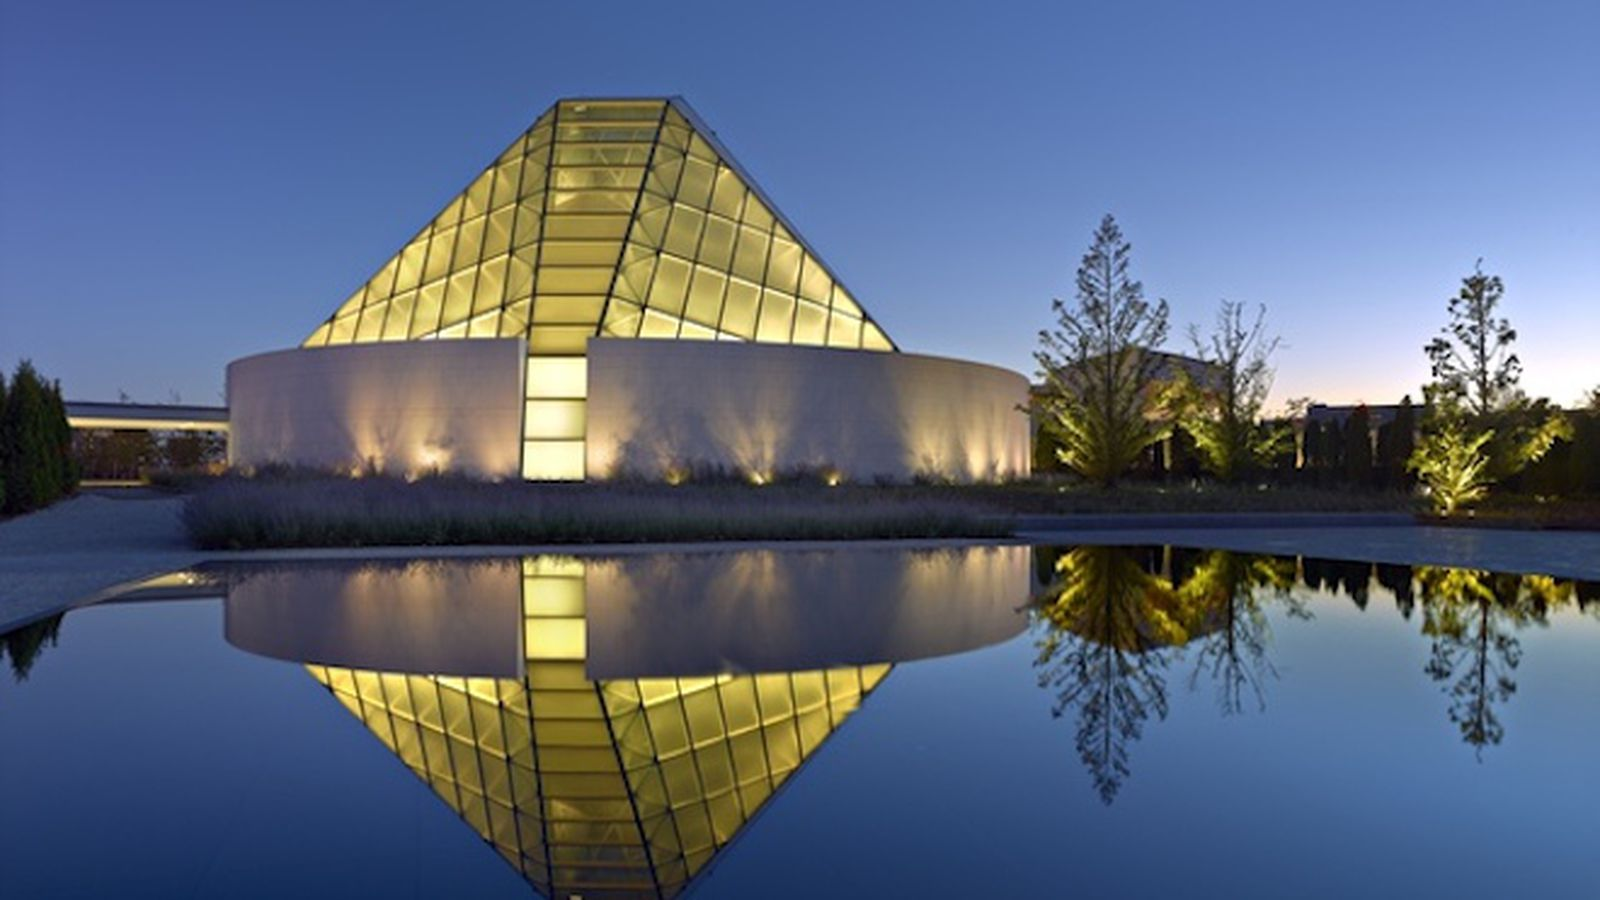 5 Memorable Buildings By Charles Correa The Late Great